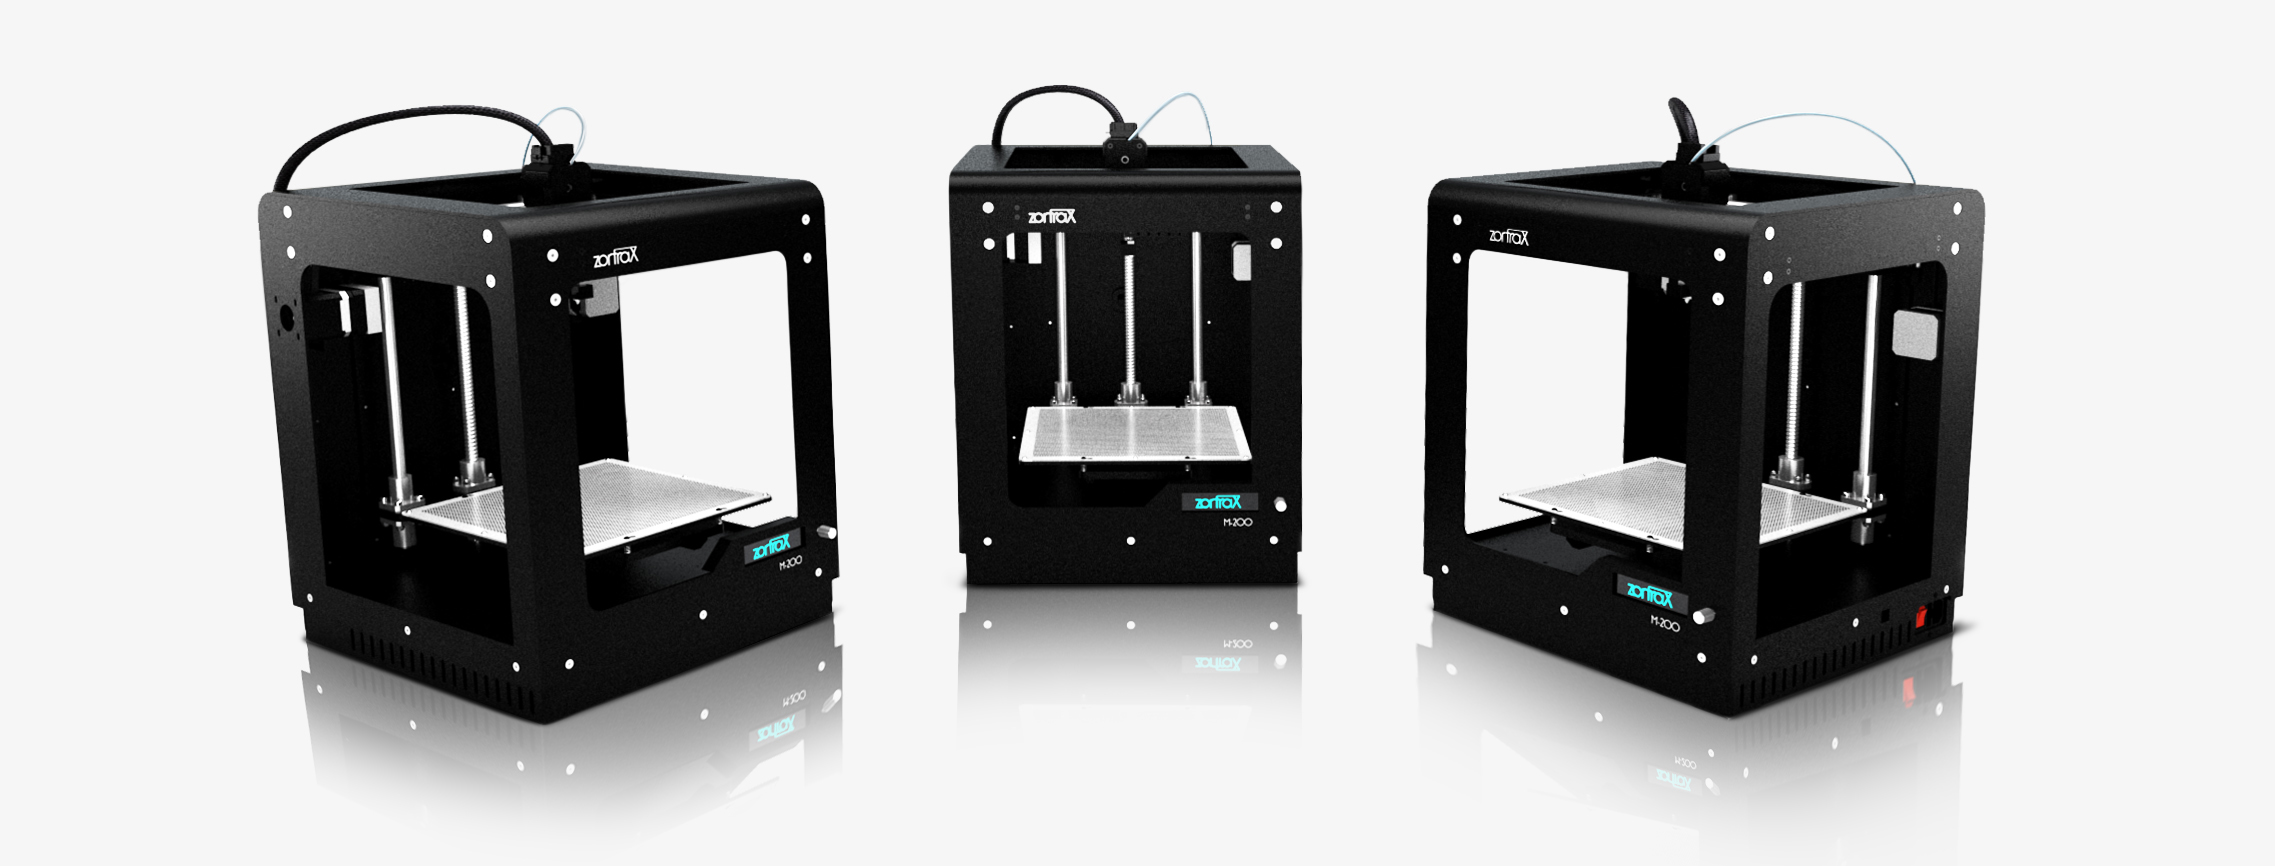 zortrax-3d-printer-04.jpg